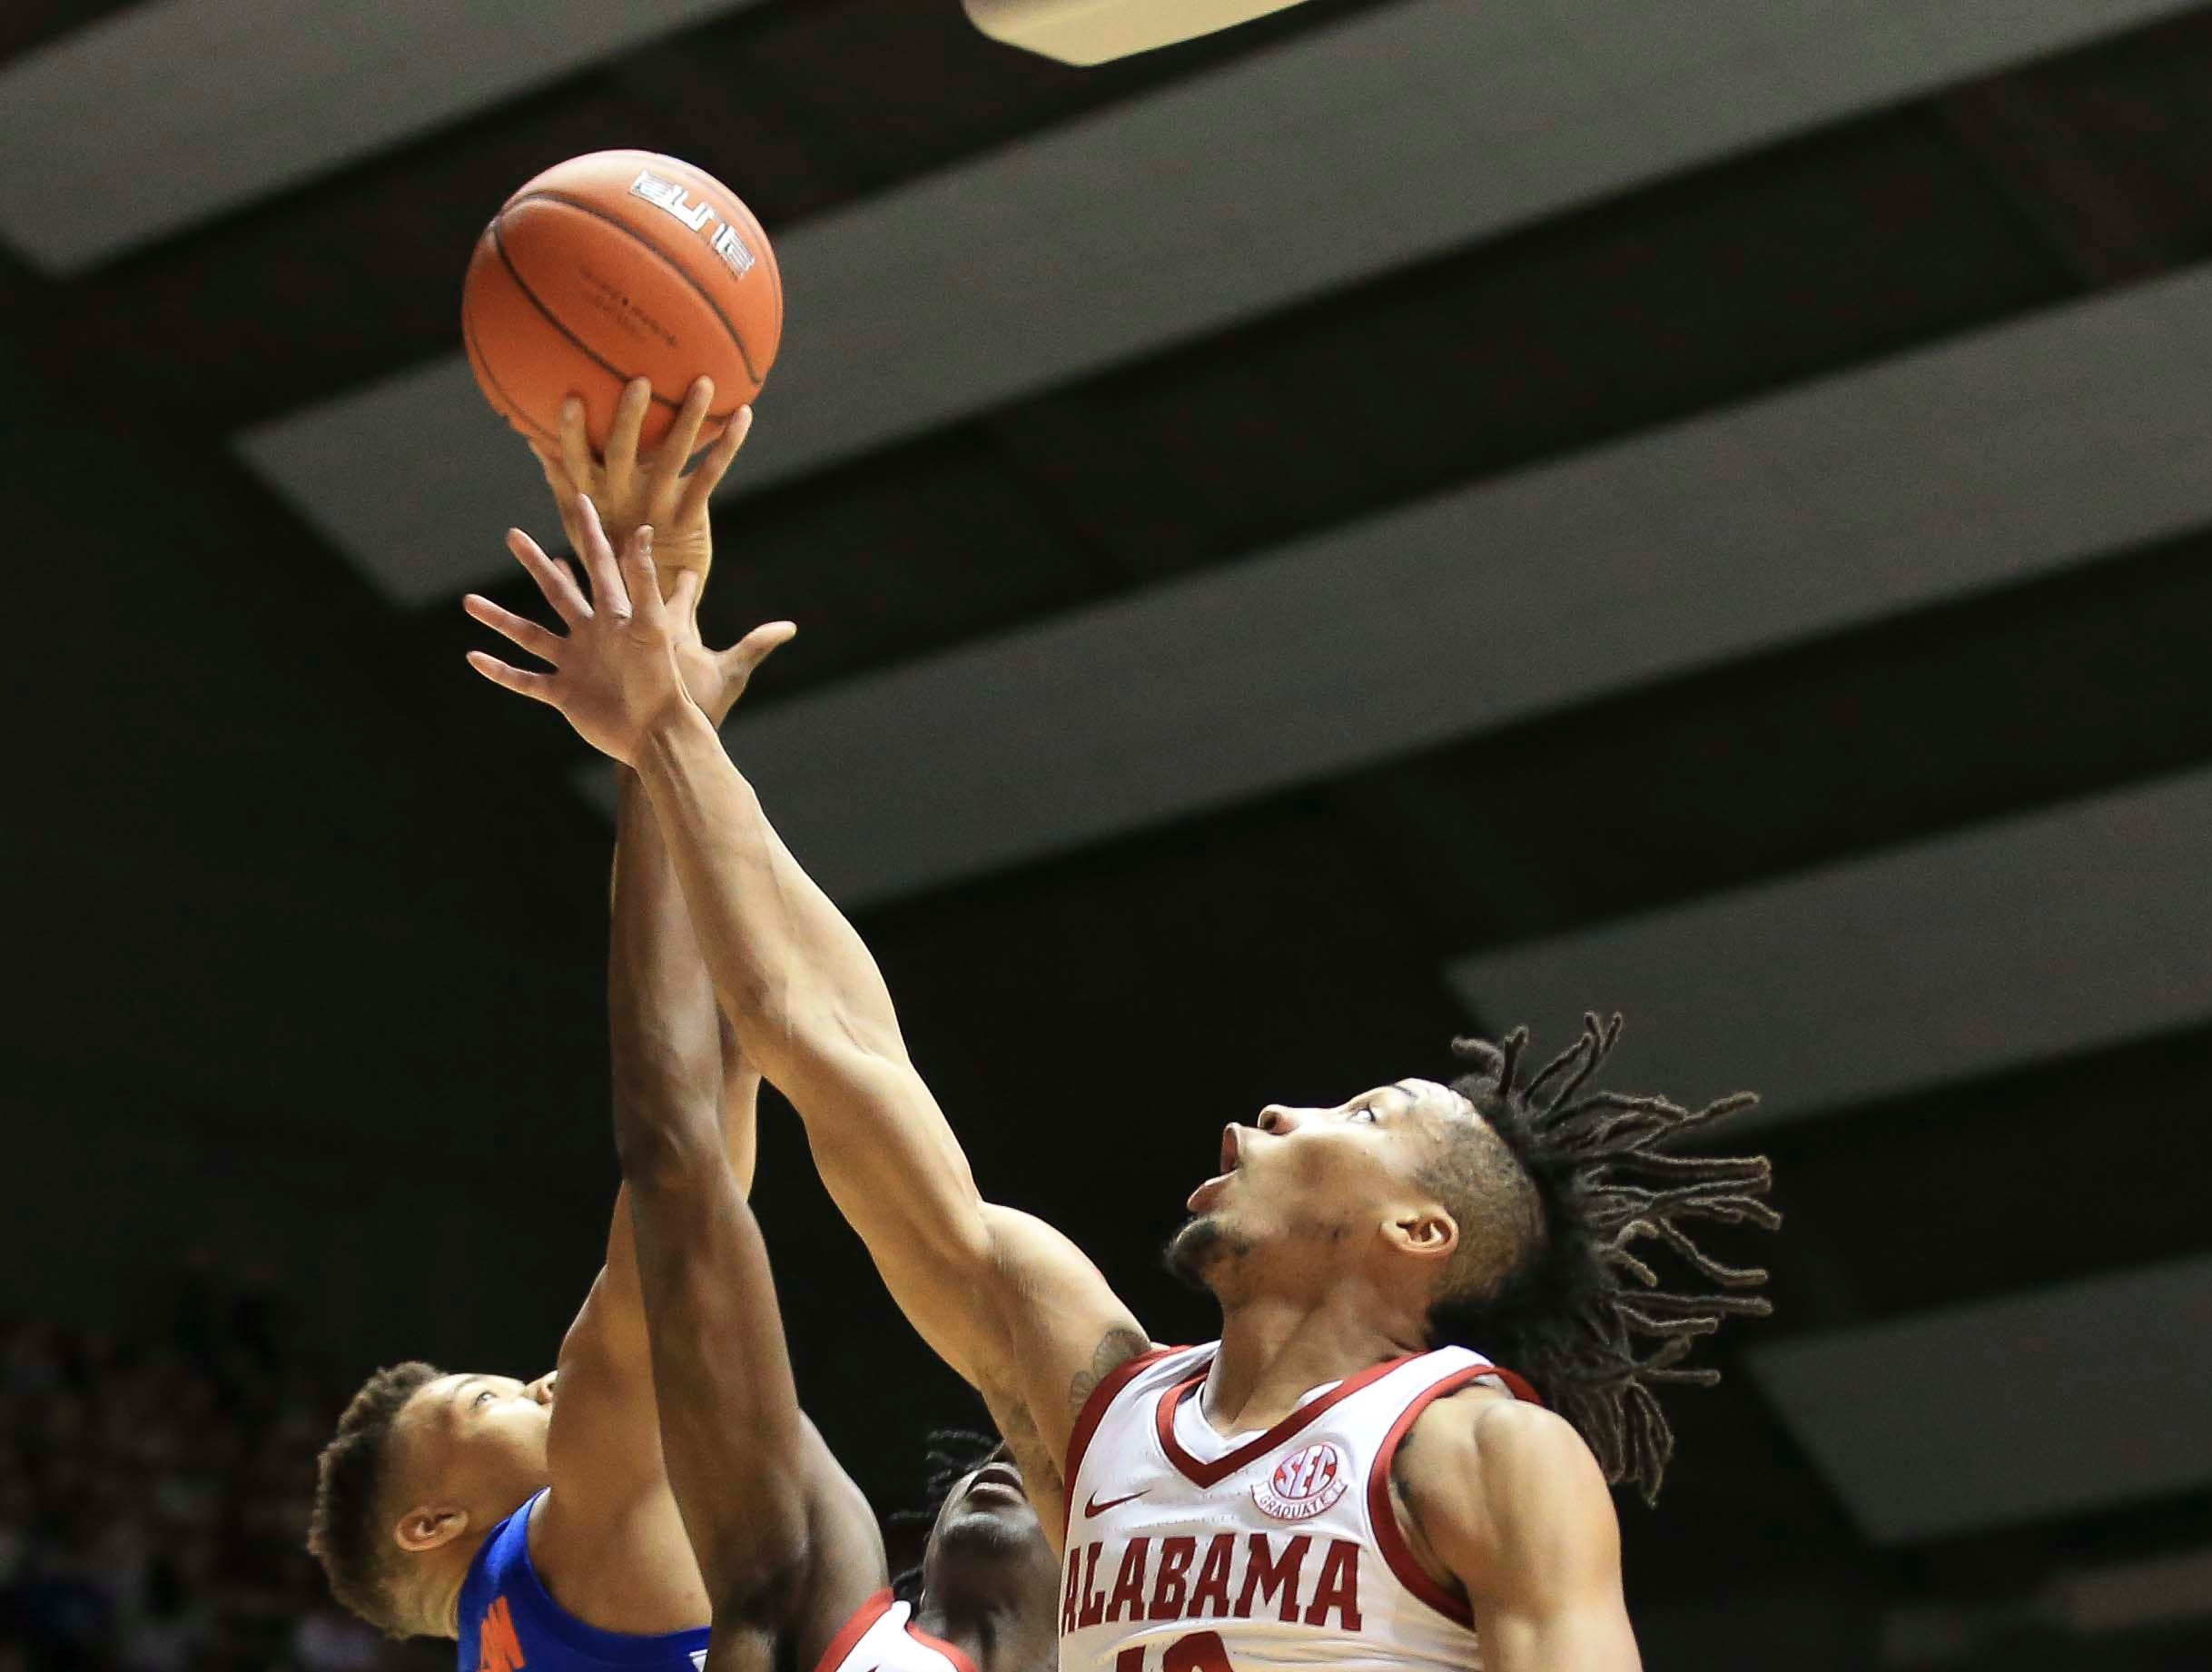 Feb 16, 2019; Tuscaloosa, AL, USA; Alabama Crimson Tide guard Dazon Ingram (12) goes for a rebound against Alabama Crimson Tide guard Kira Lewis Jr. (2) and Florida Gators forward Keyontae Johnson (11) during the first half at Coleman Coliseum. Mandatory Credit: Marvin Gentry-USA TODAY Sports